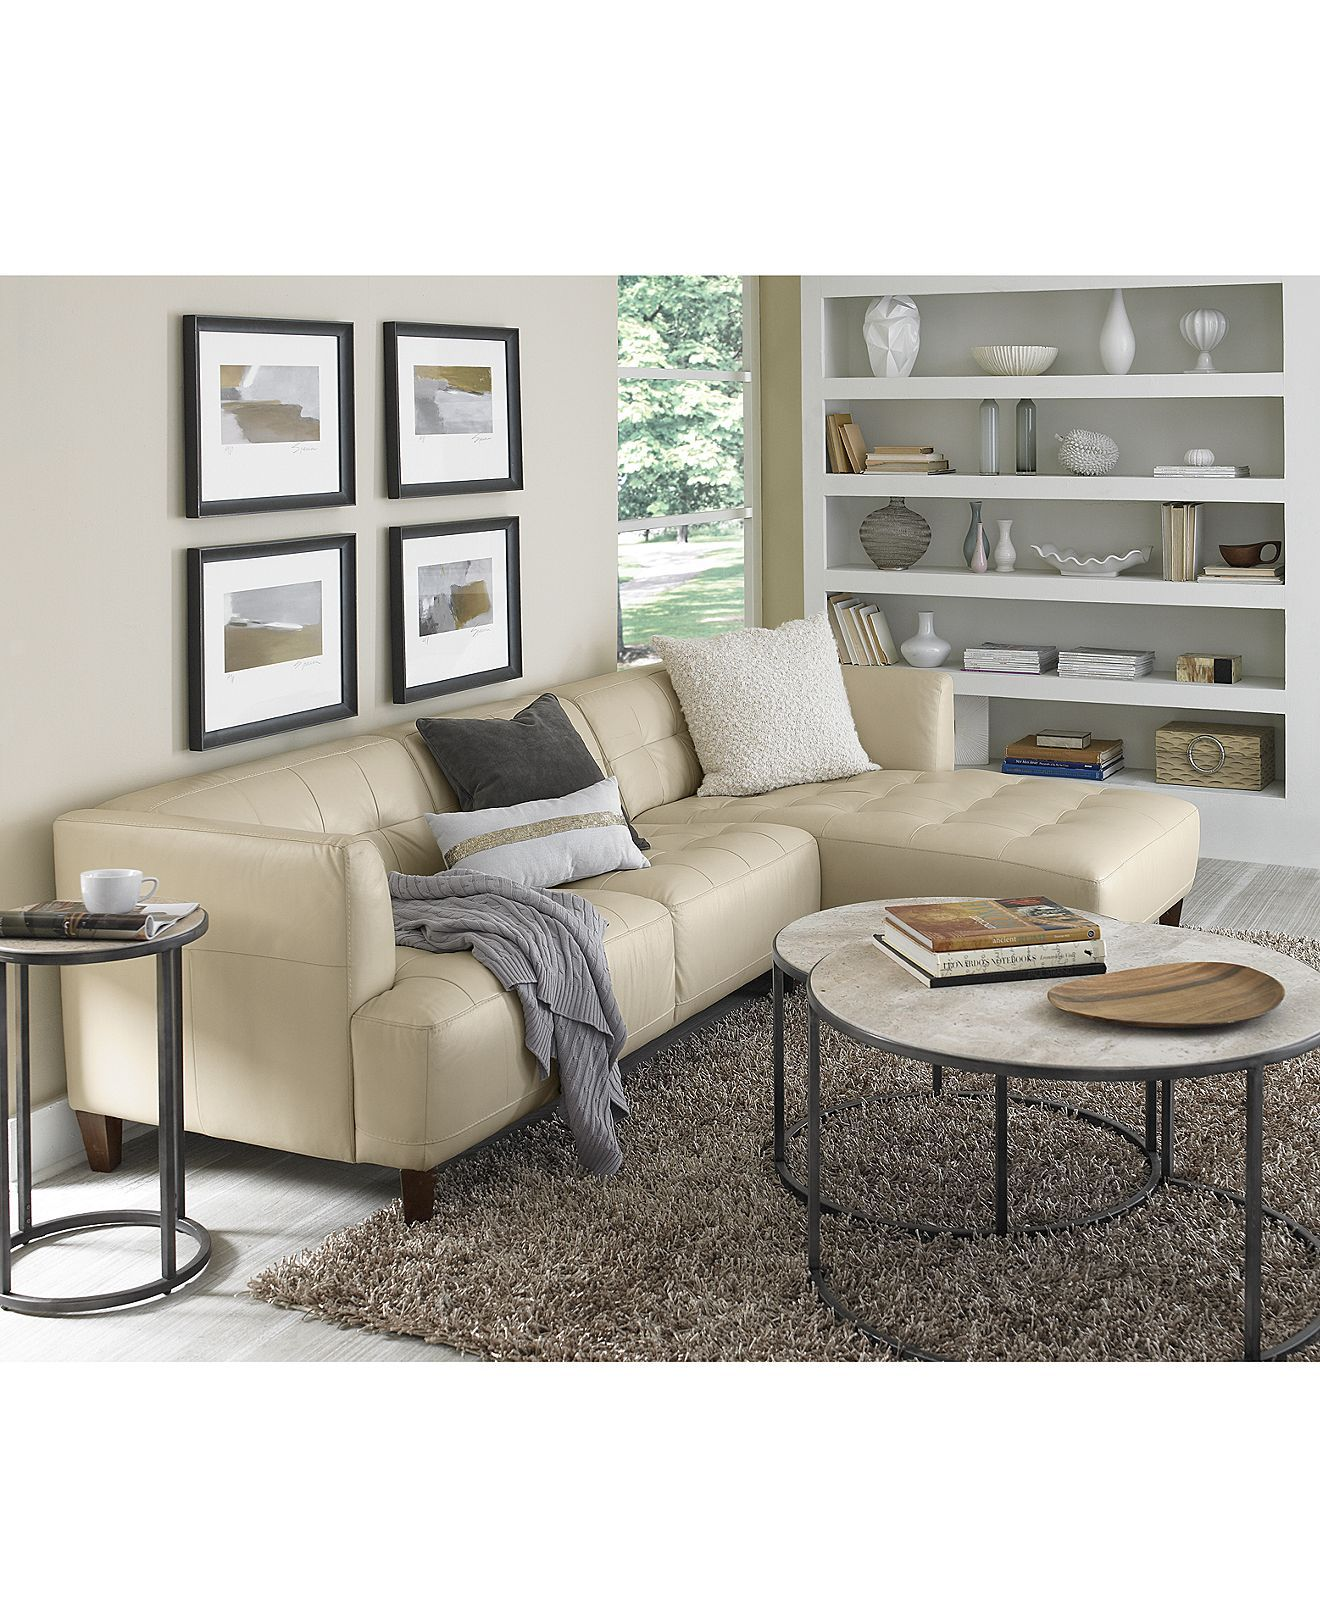 Alessia Leather Sectional Living Room Furniture Sets Pieces